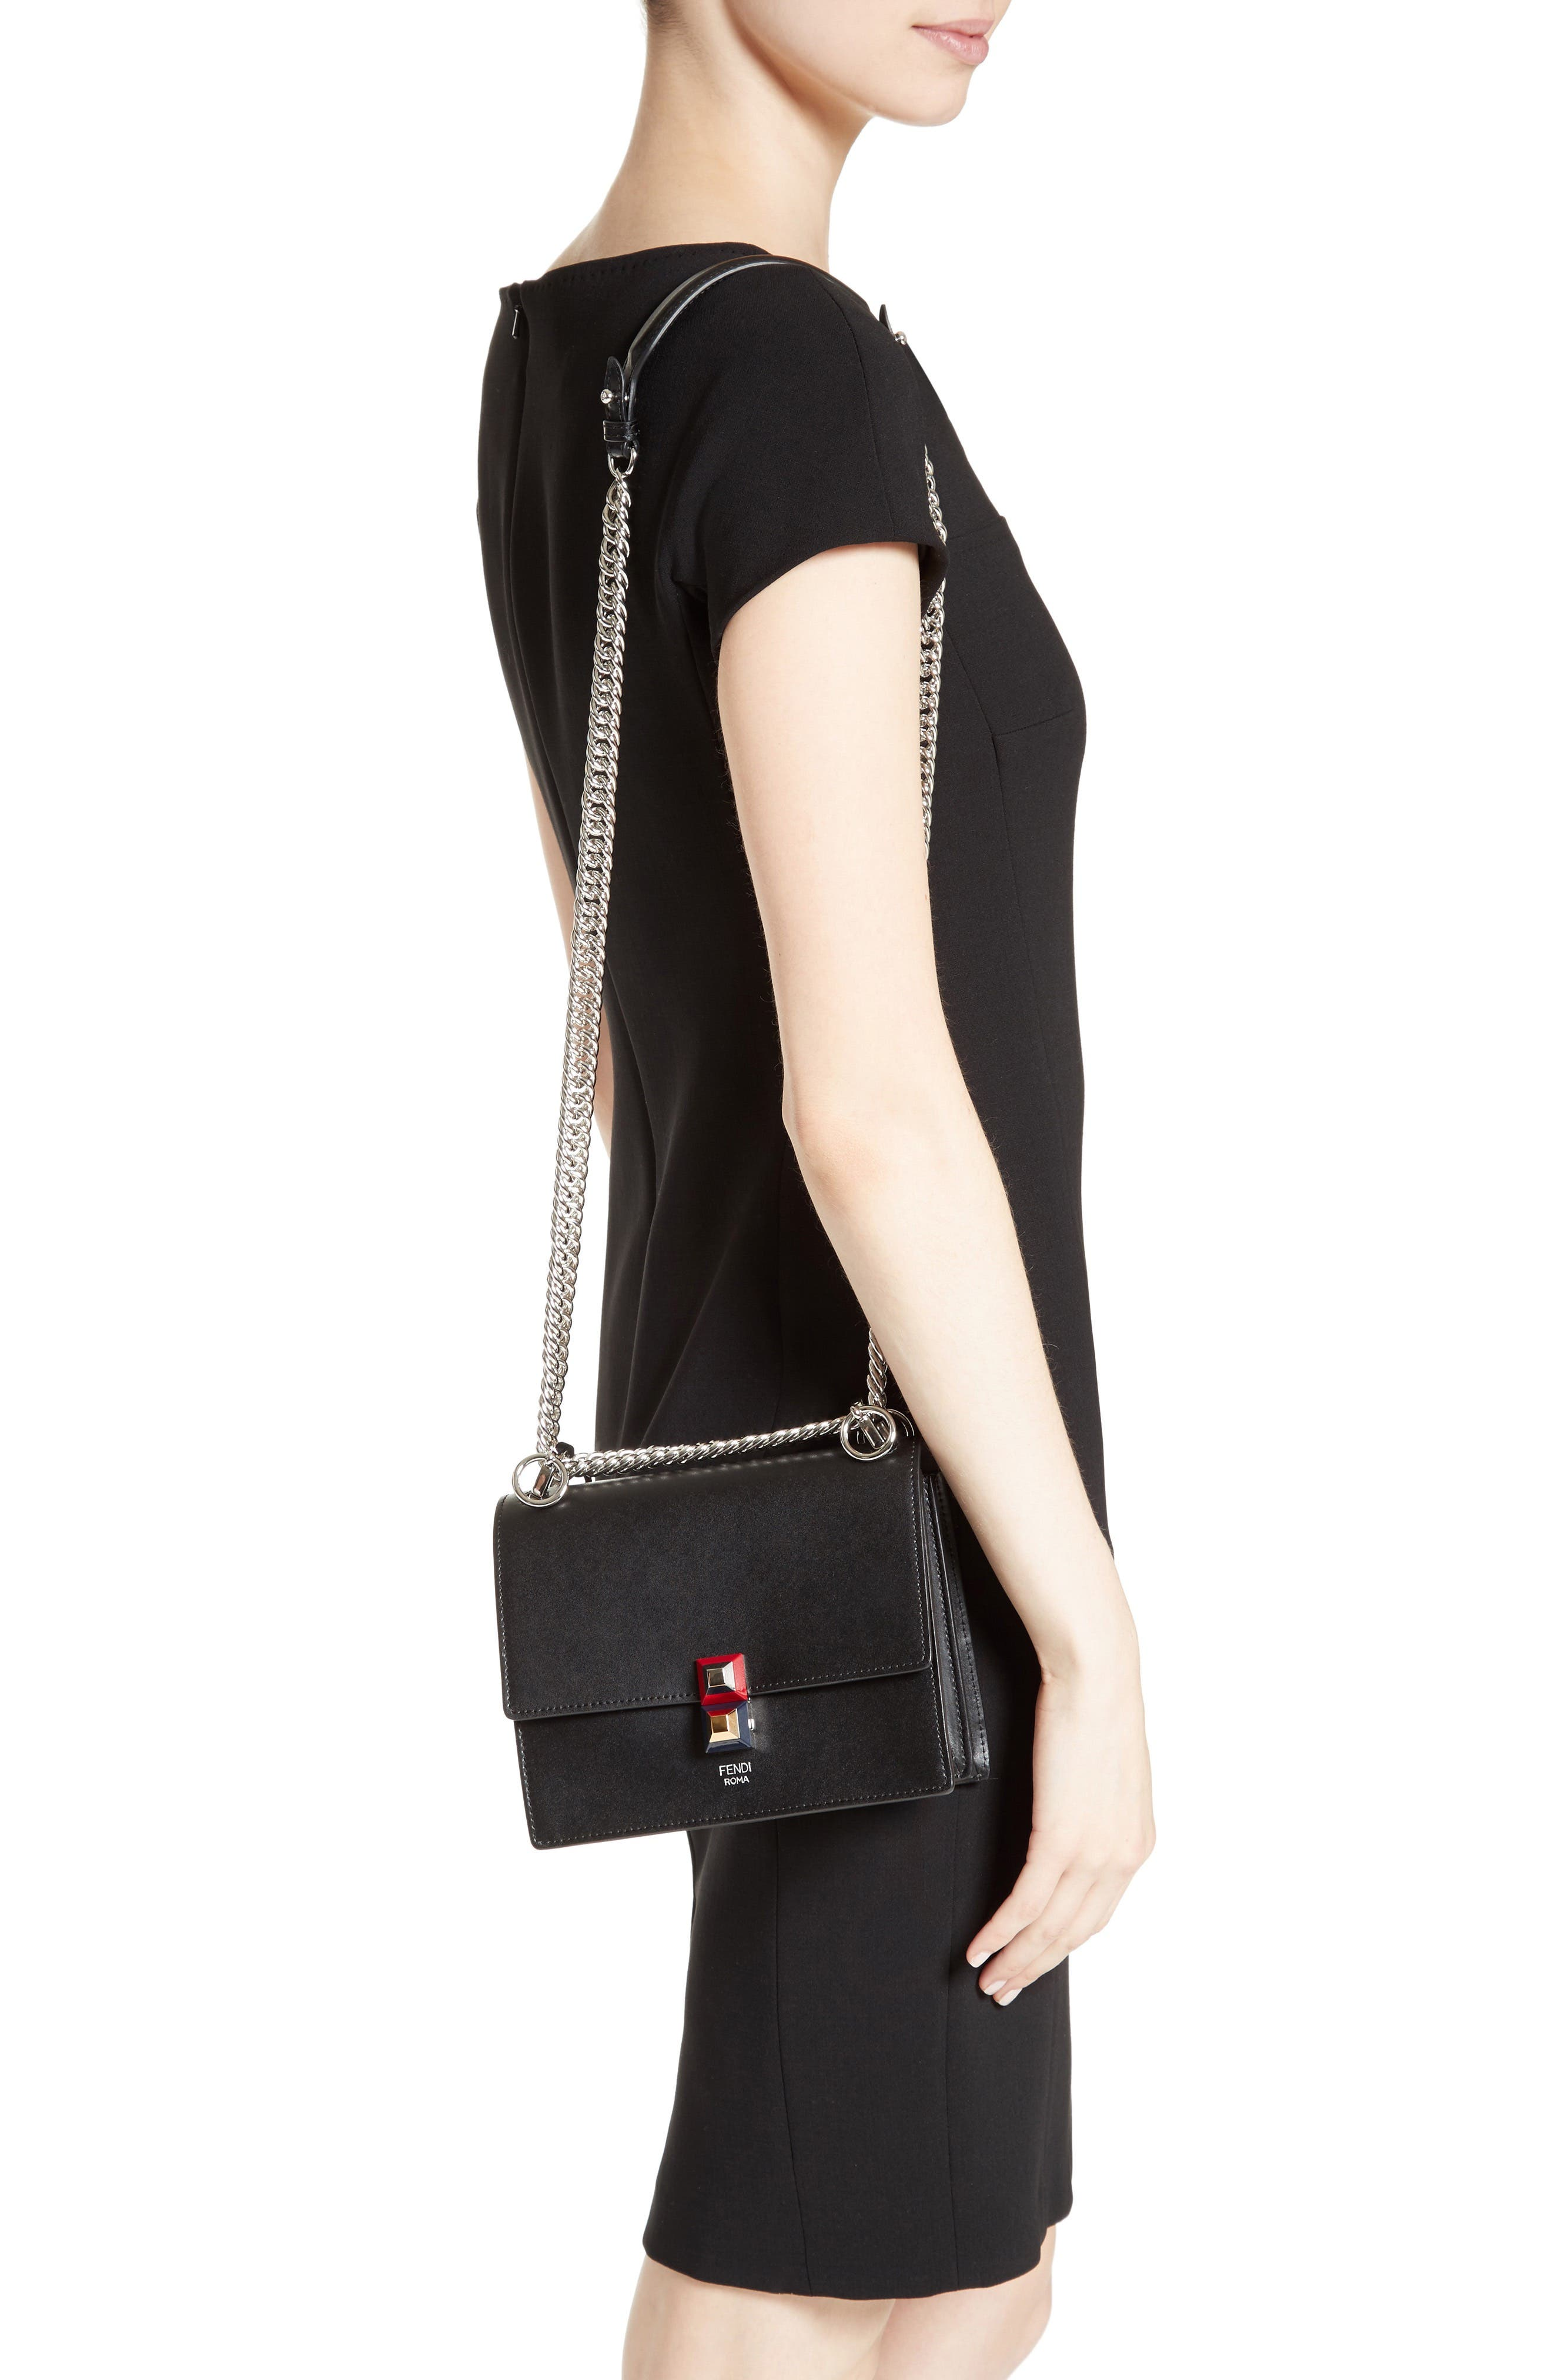 0b9a2bf4 Women's Fendi Handbags | Nordstrom